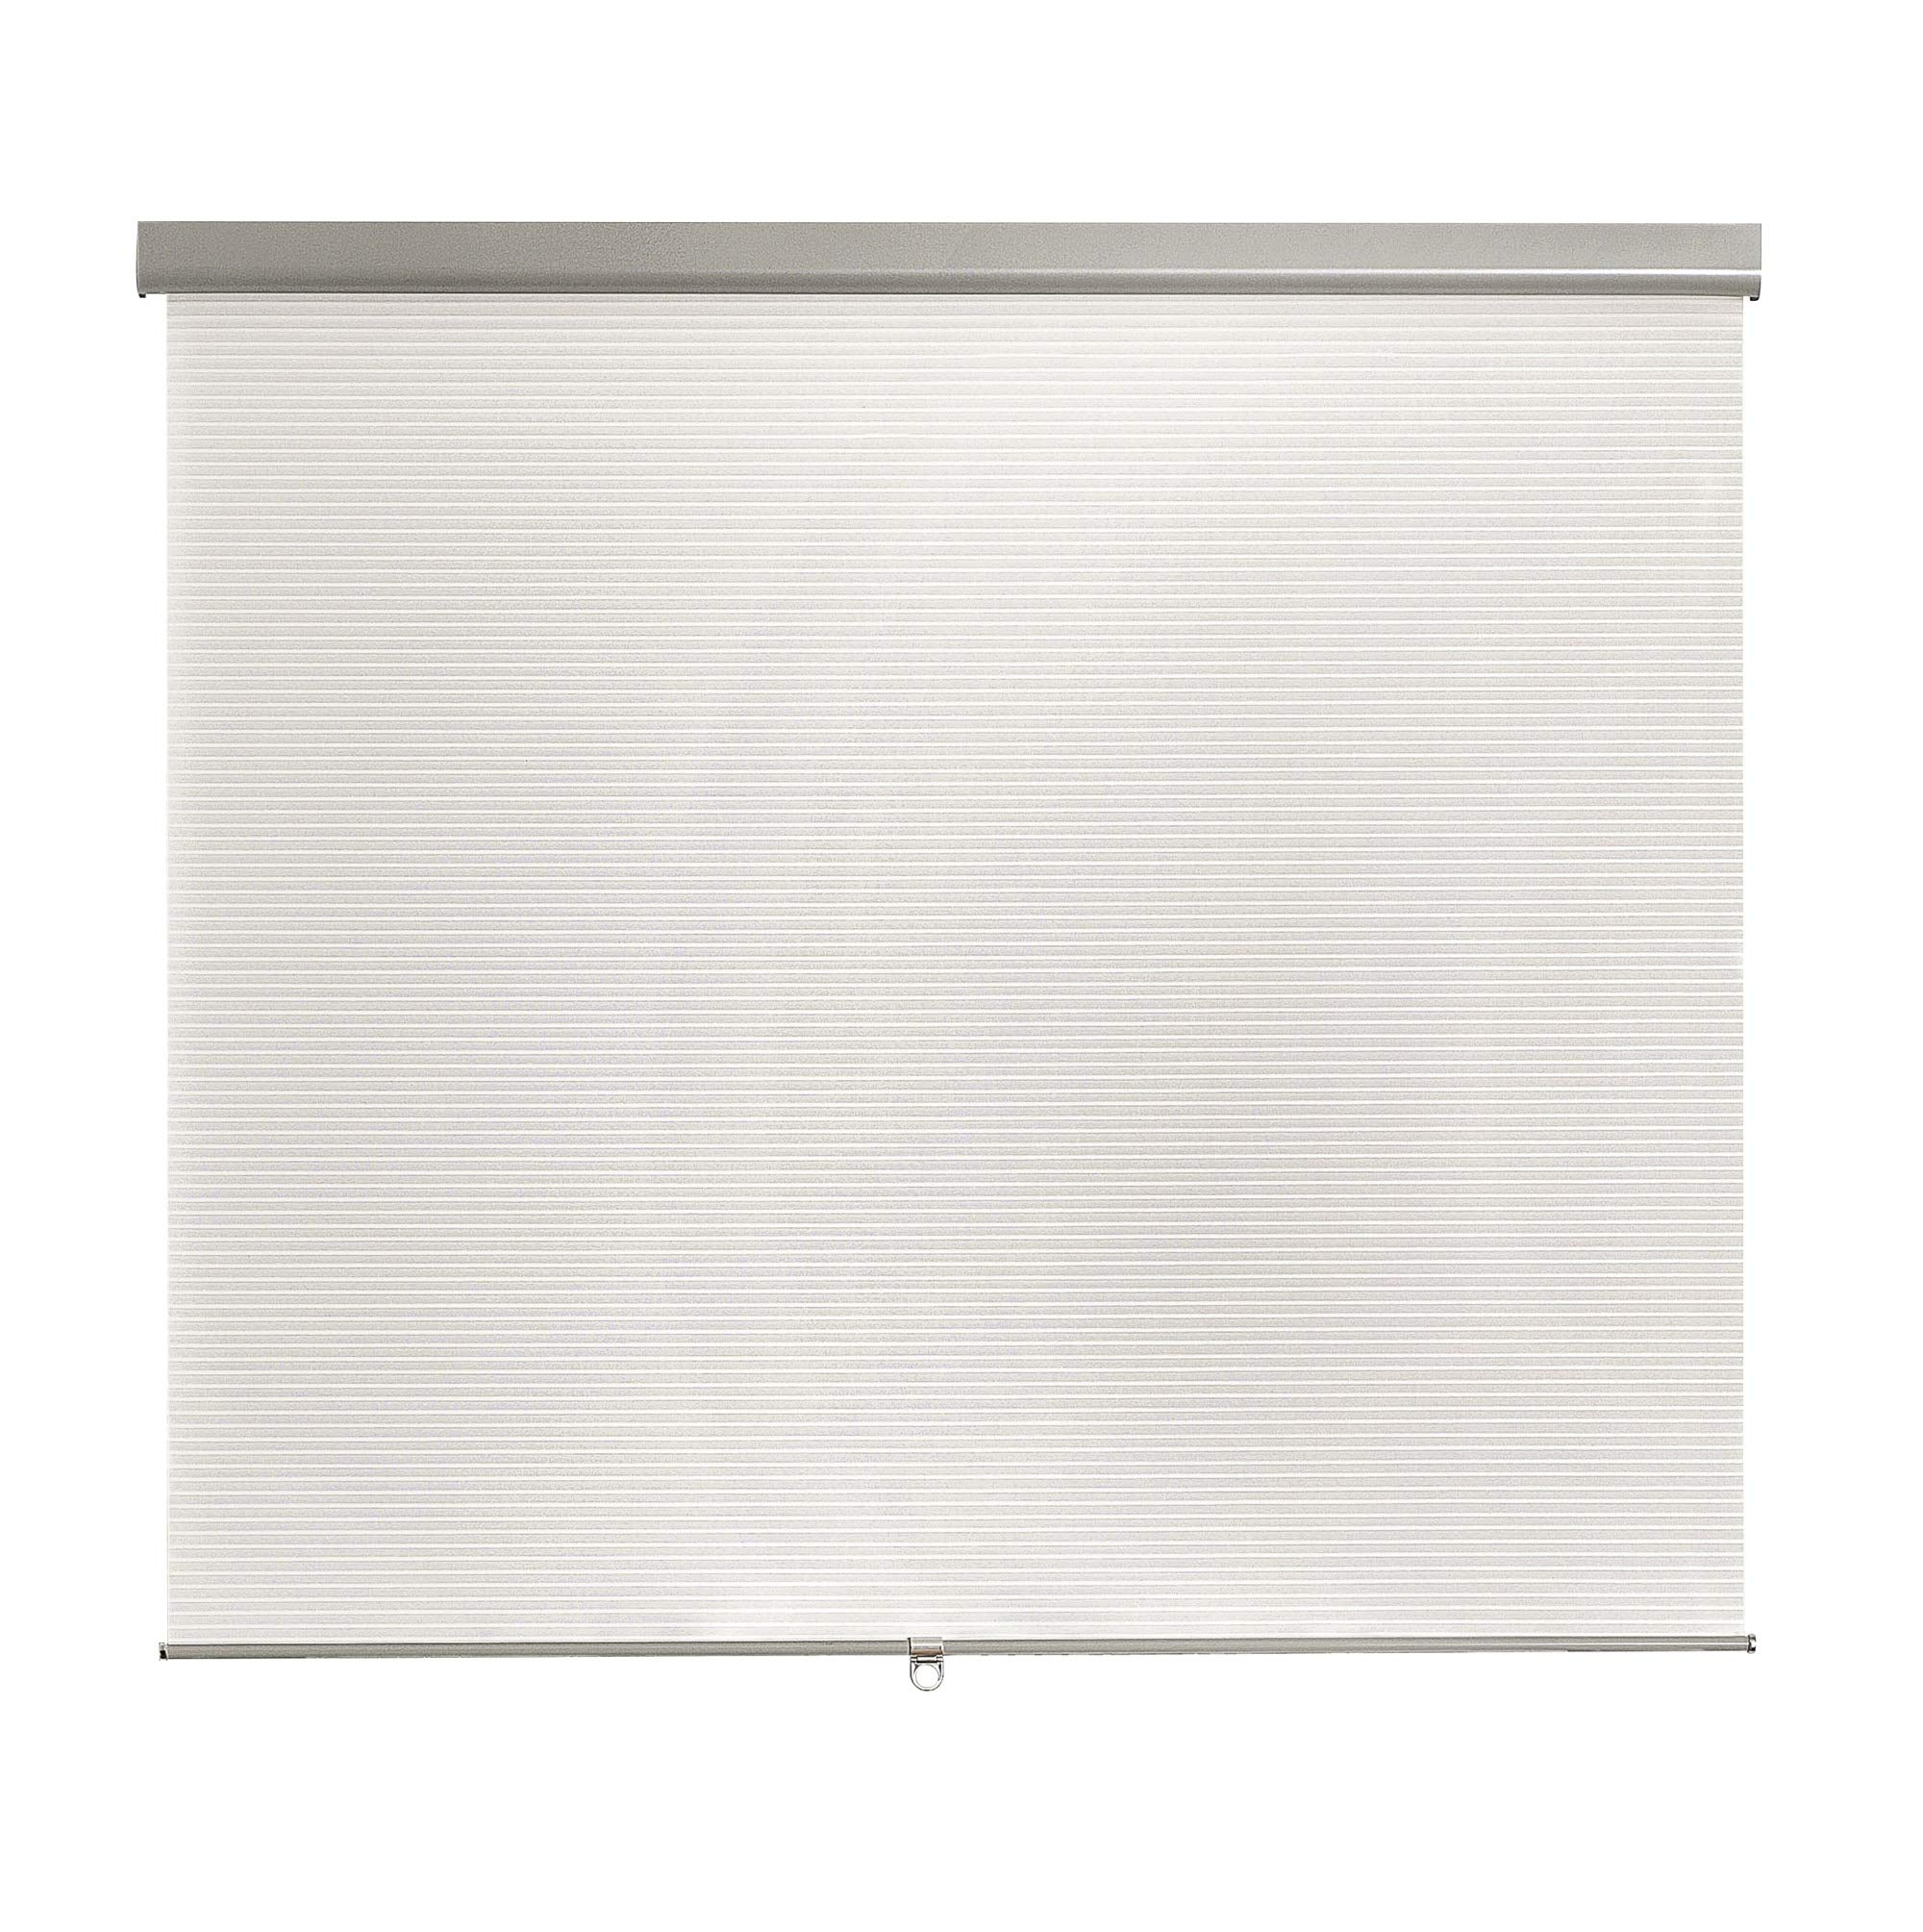 Brielle Pleated Semi Sheer Cordless Roller Shade, 34 x 66, White